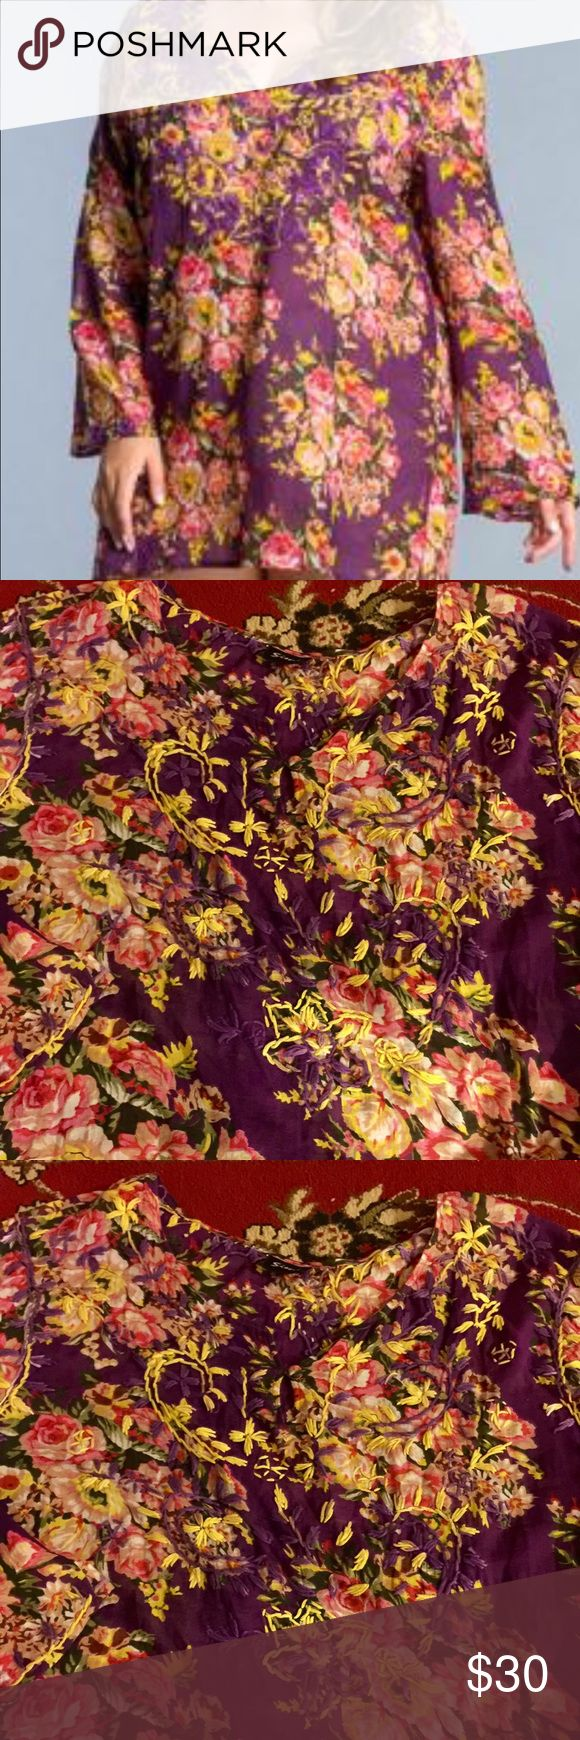 Swim cover or tunic Beautiful floral with embroidery size 3x tunic can b worn as swim cover up also SIMI Tops Tunics